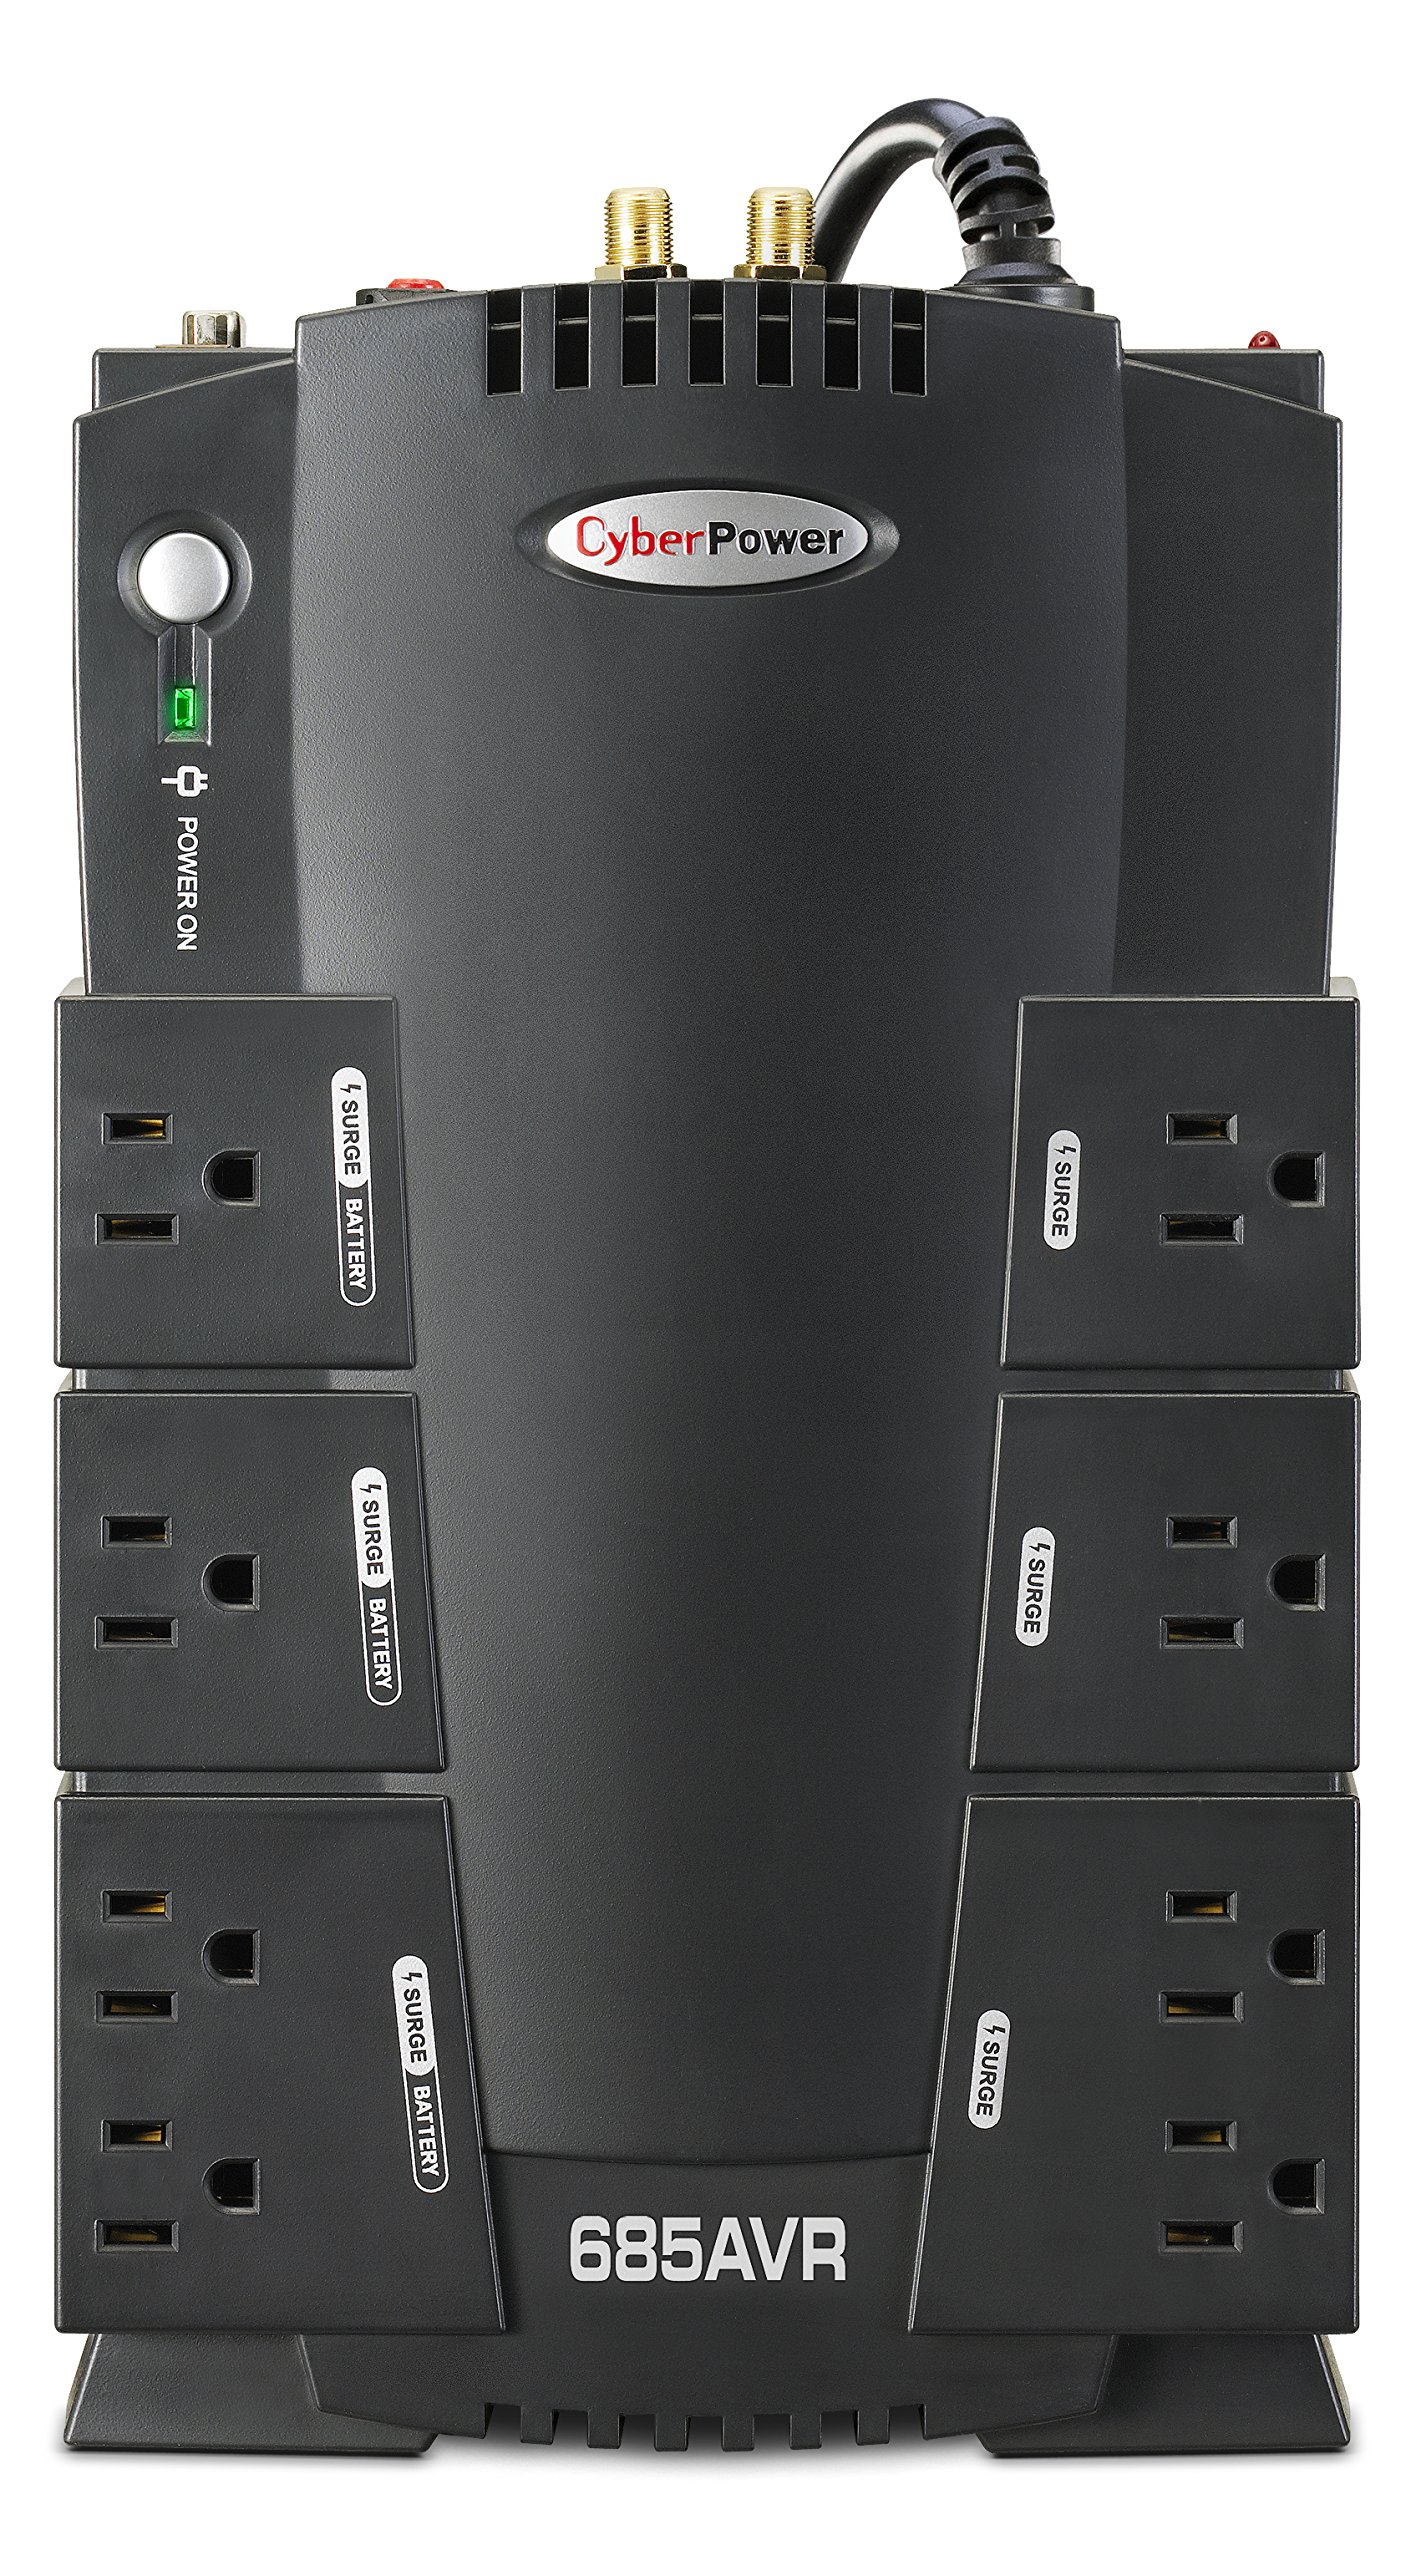 CyberPower CP685AVR AVR UPS System, 685VA/390W, 8 Outlets, Compact